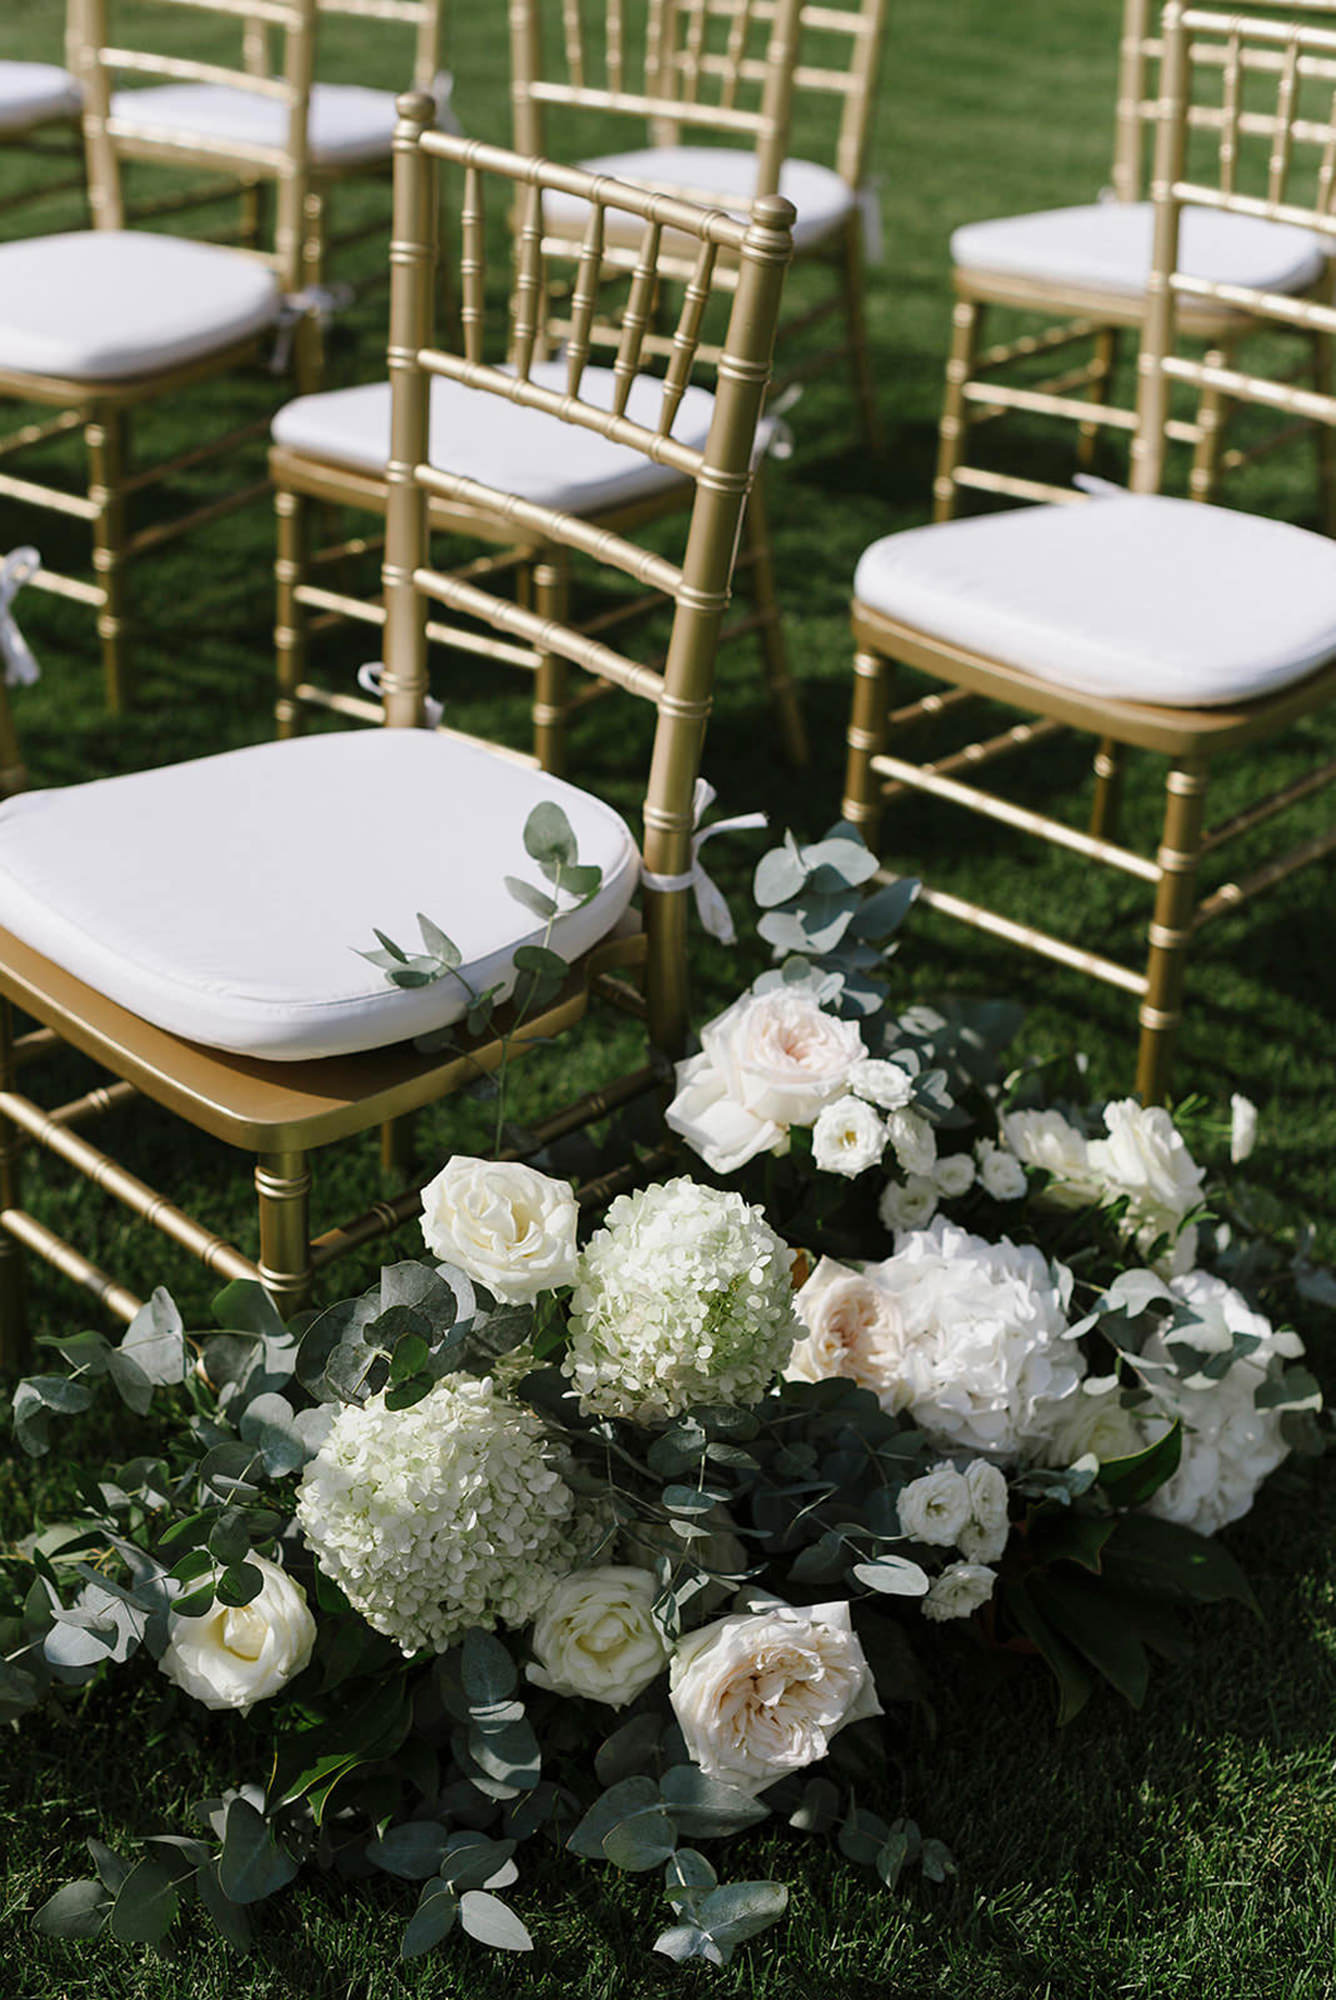 Aisle floral decor in white and blush, photo by Thierry Joubert